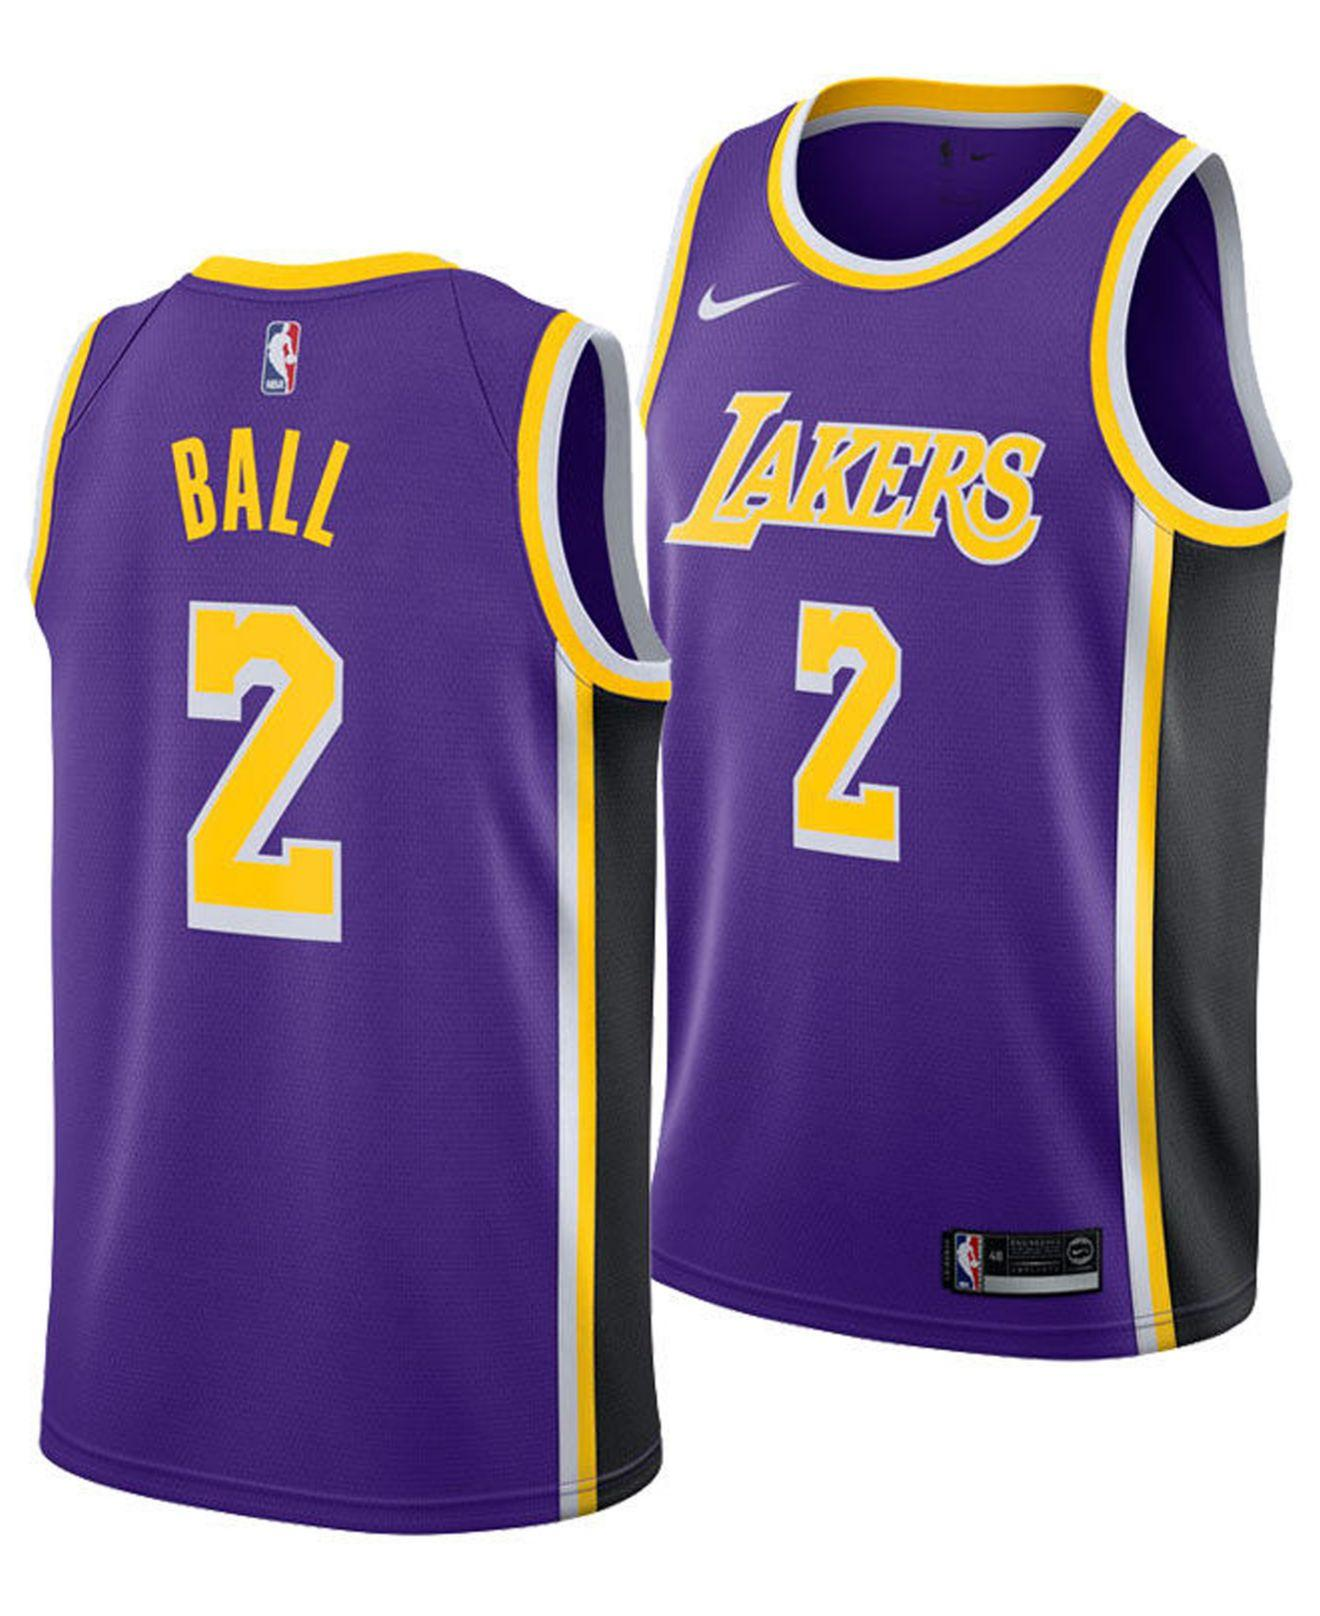 35acbc8bd00 Lyst - Nike Lonzo Ball Los Angeles Lakers Statement Swingman Jersey ...